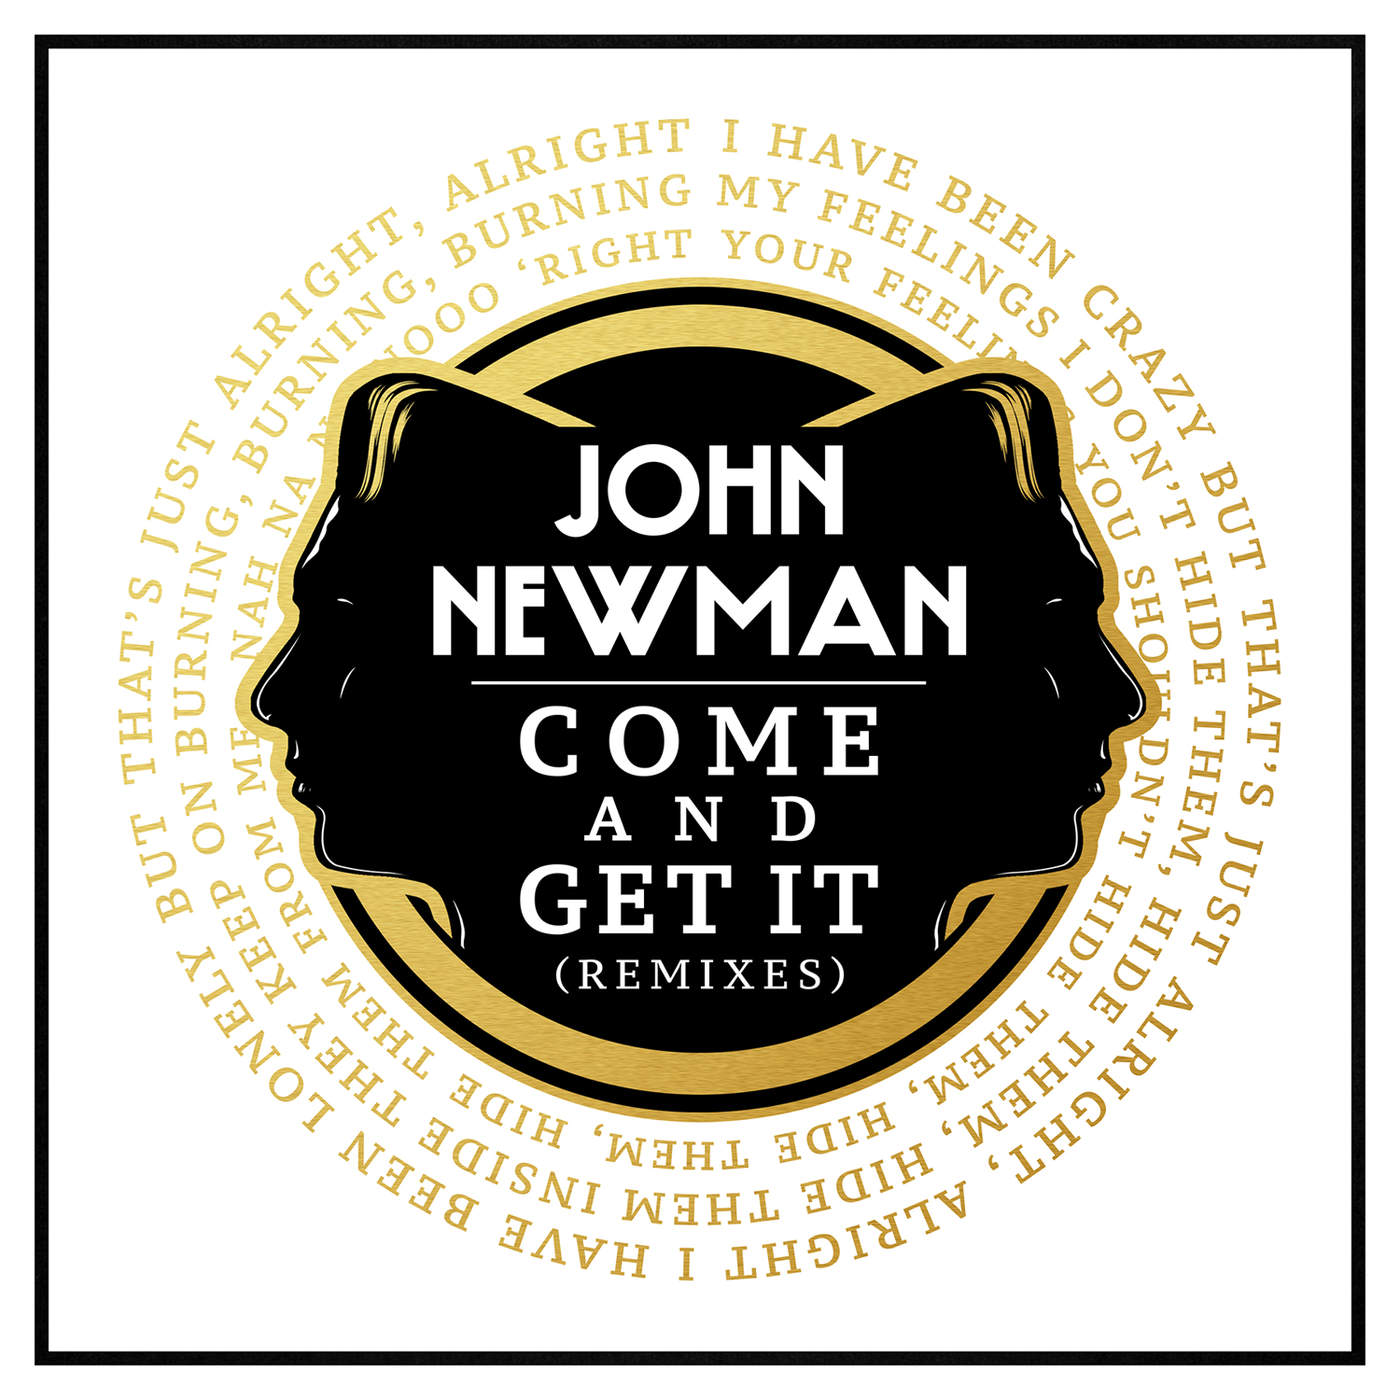 John Newman - Come and Get It (Remixes) - Single Cover